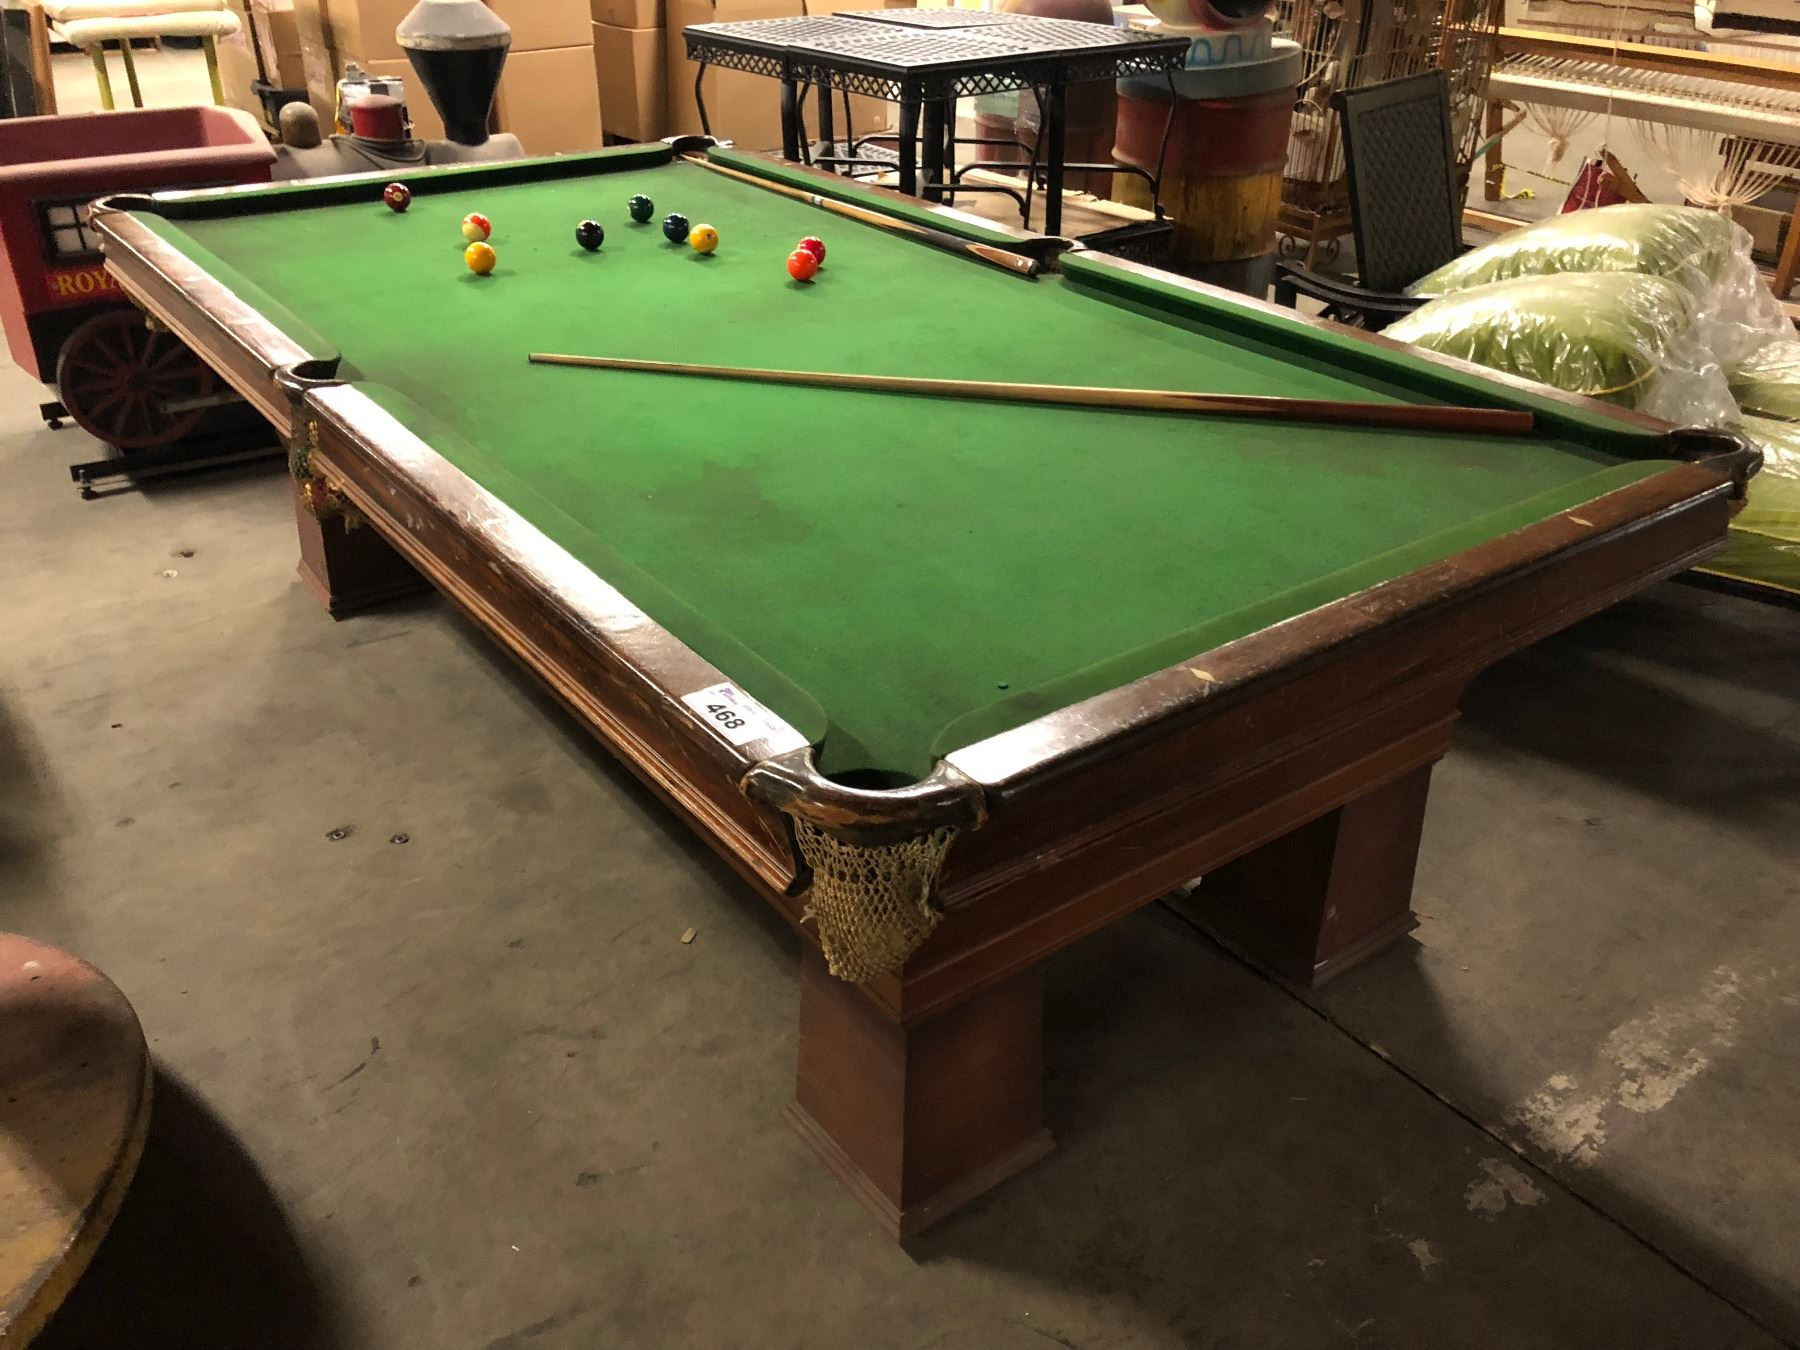 DISTRESSED MOBILE POOL TABLE WITH CUES BALLS RACK - Mobile pool table